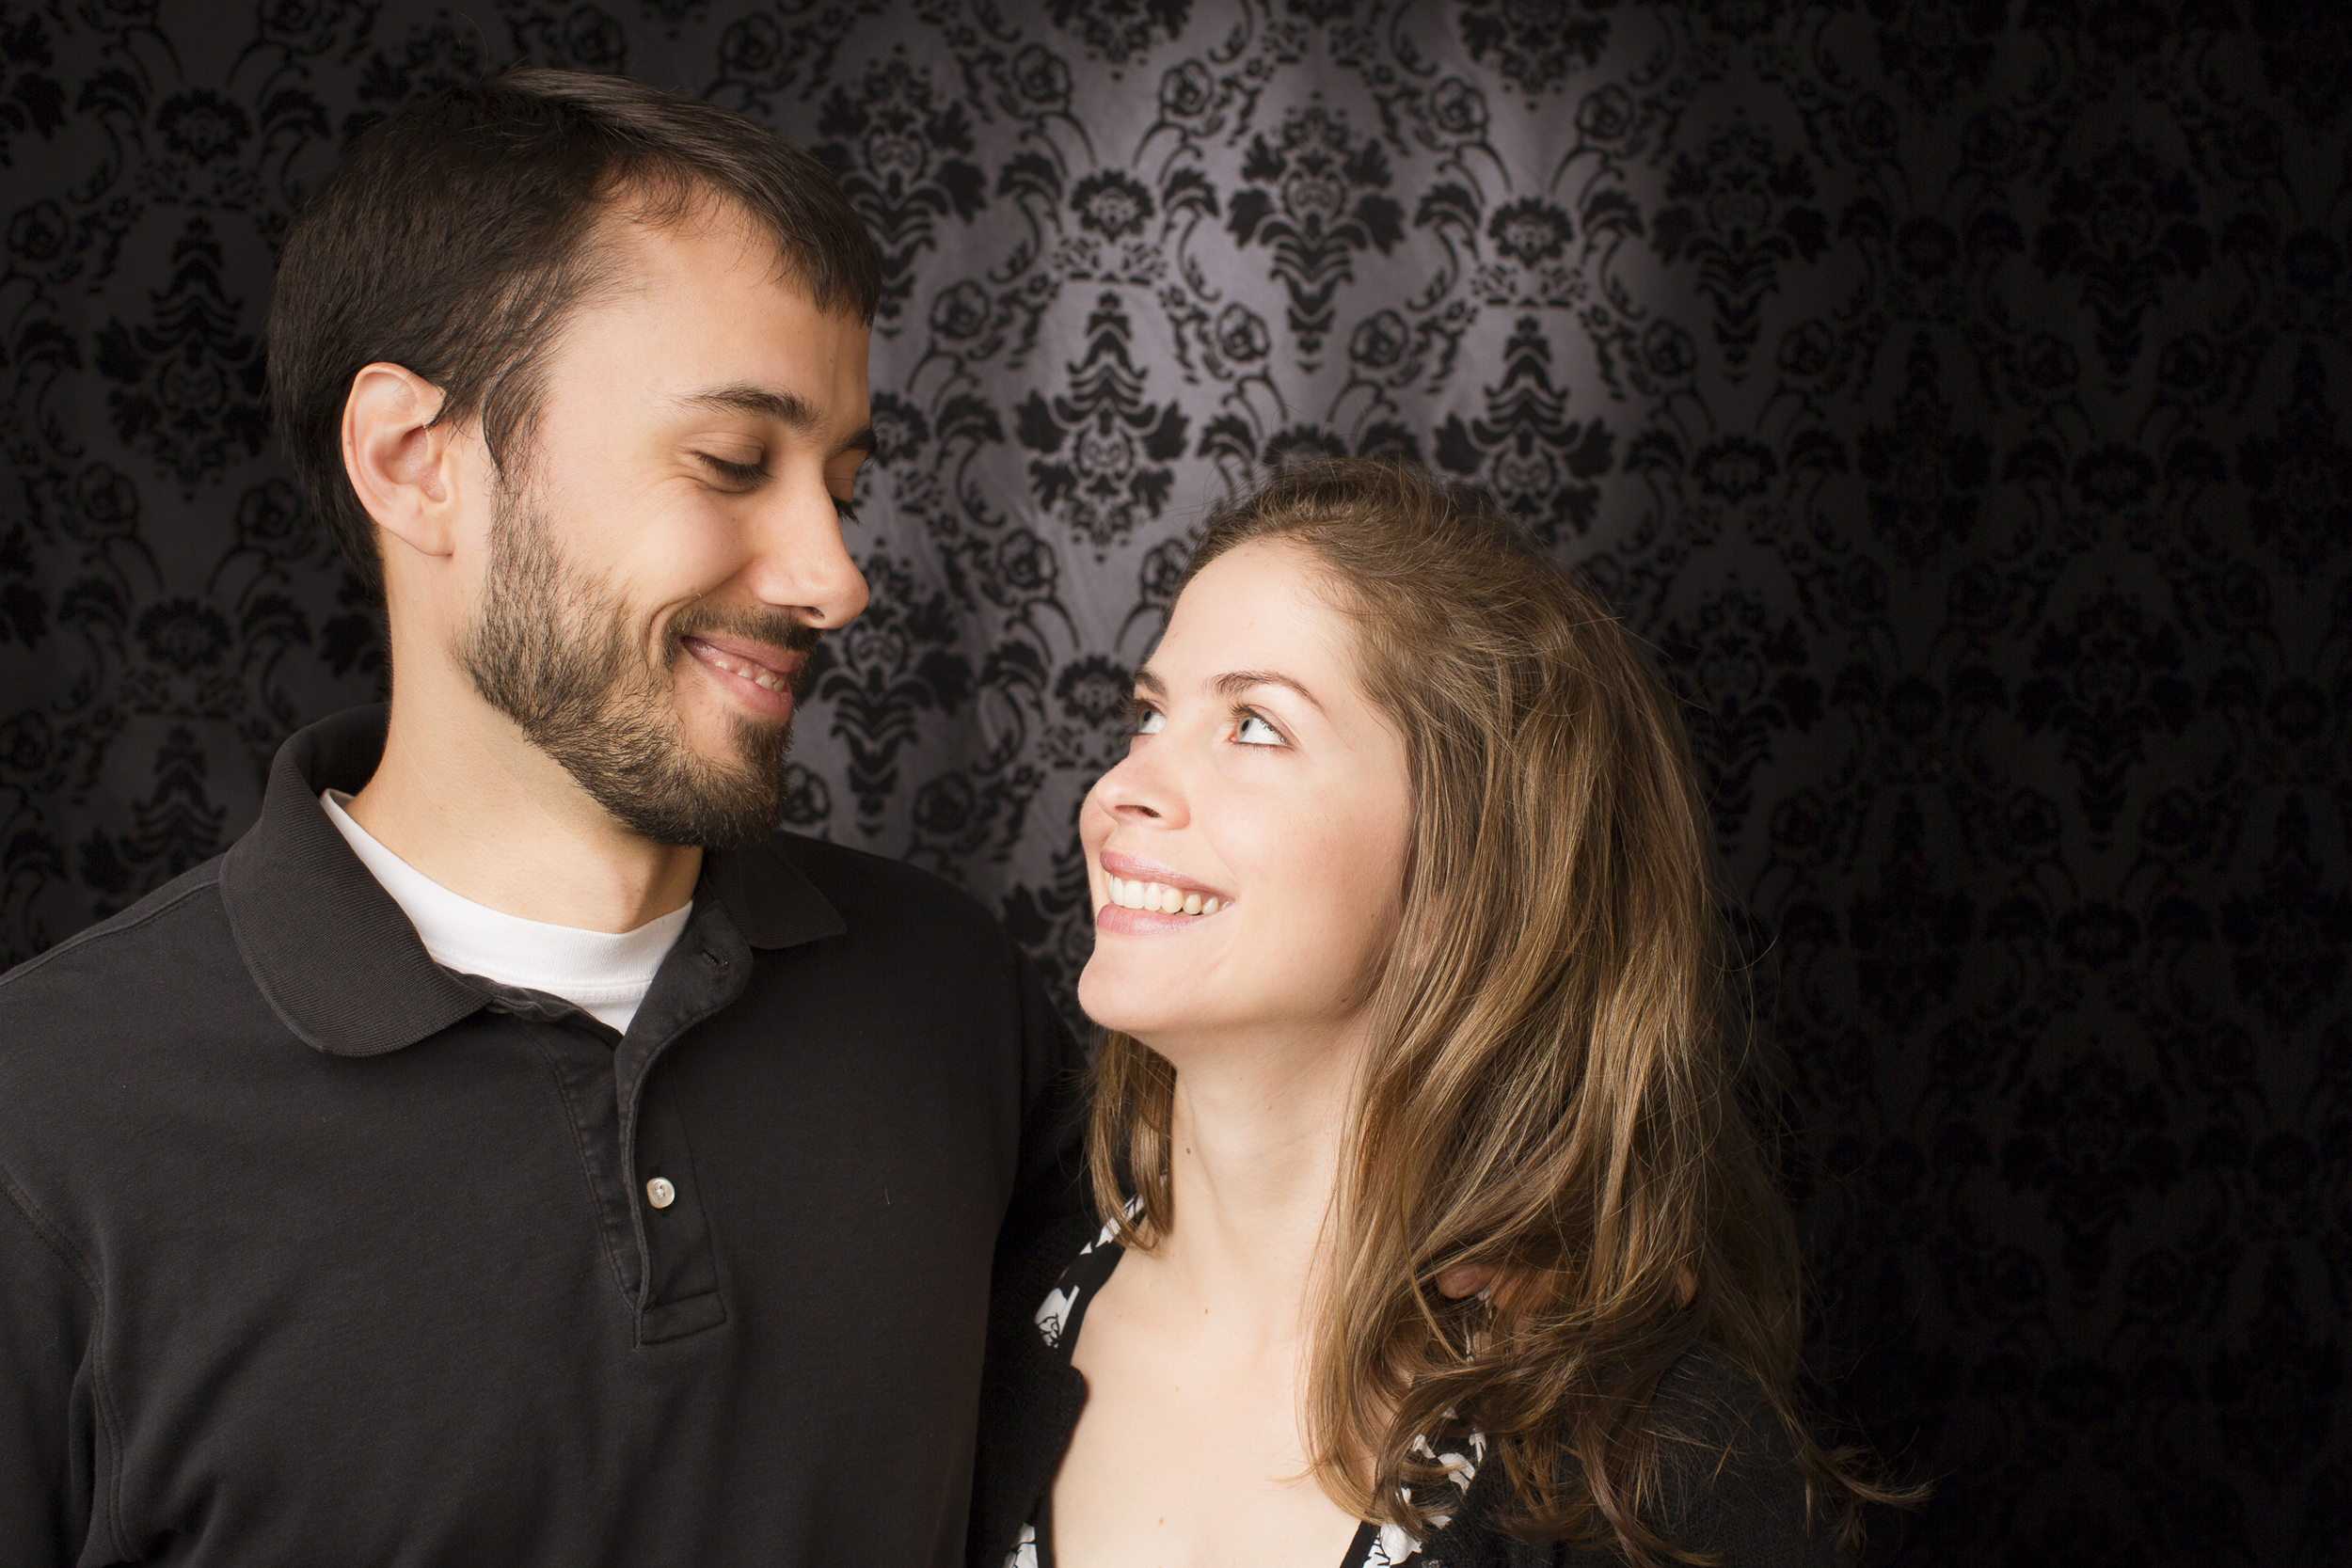 37 young couple family portrait studio session on black modern background.jpg